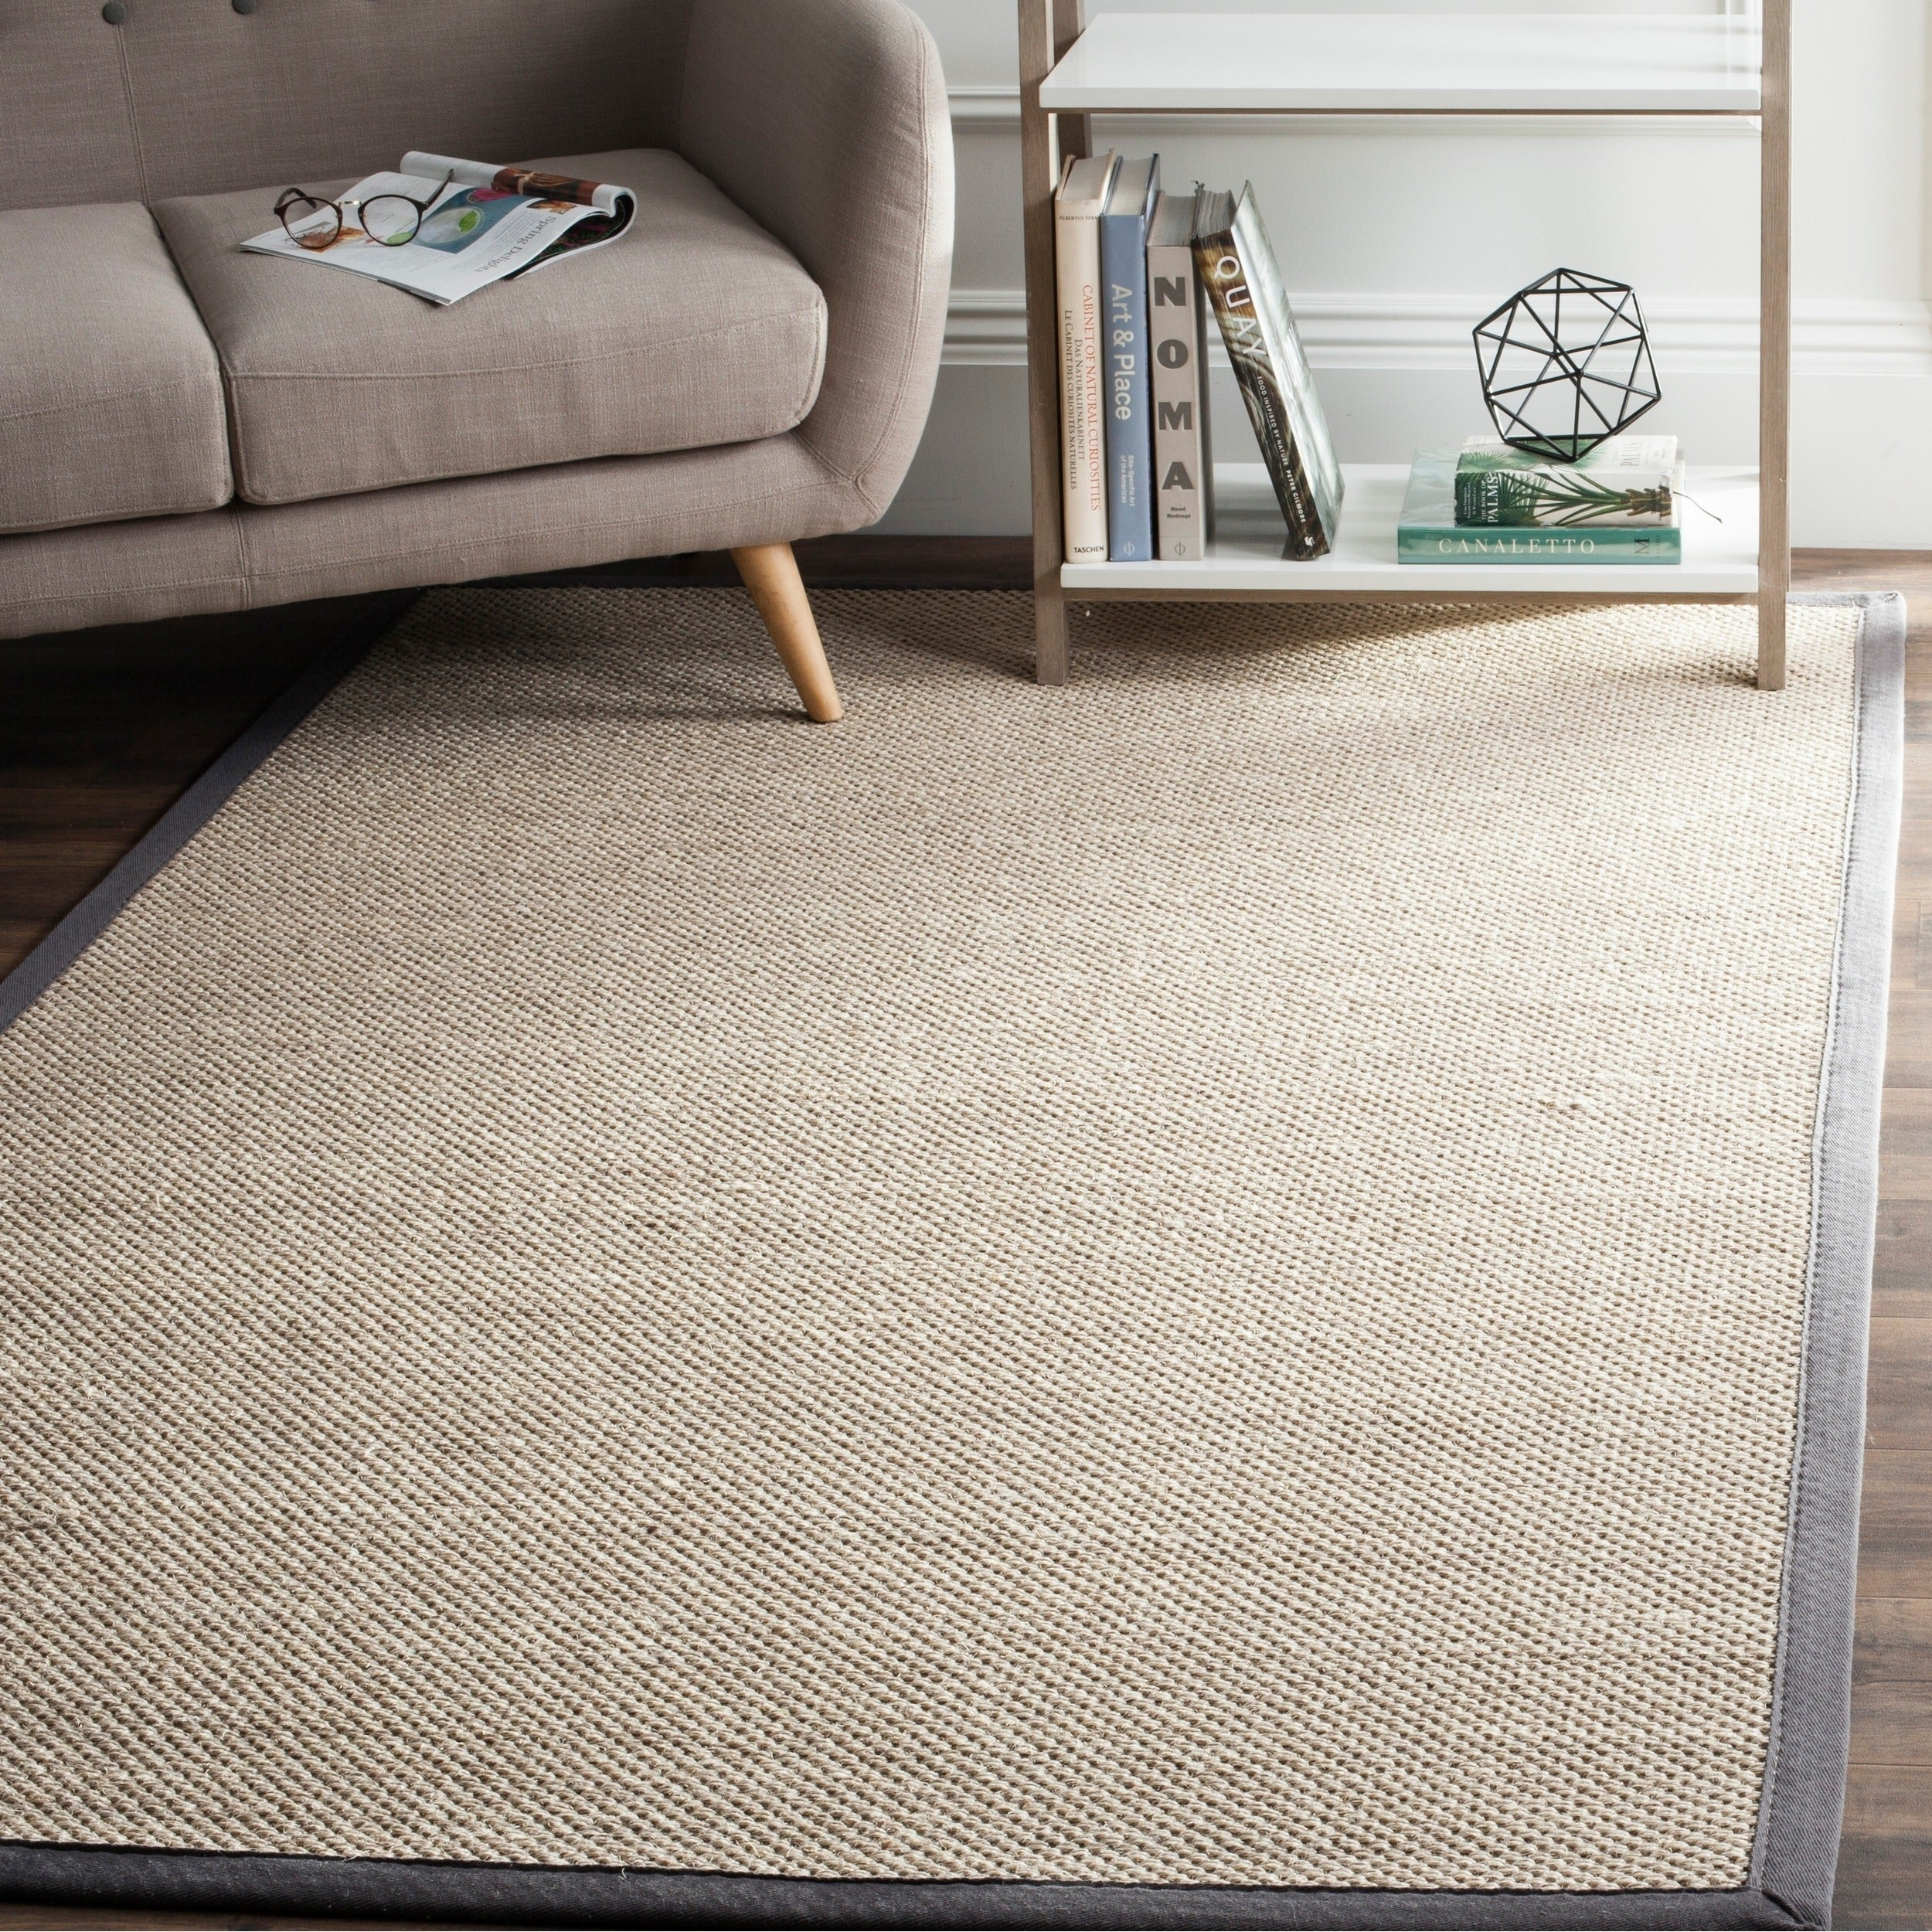 Safavieh Casual Natural Fiber Marble Dark Grey Sisal Area Rug 2 X 3 On Free Shipping Orders Over 45 11041348